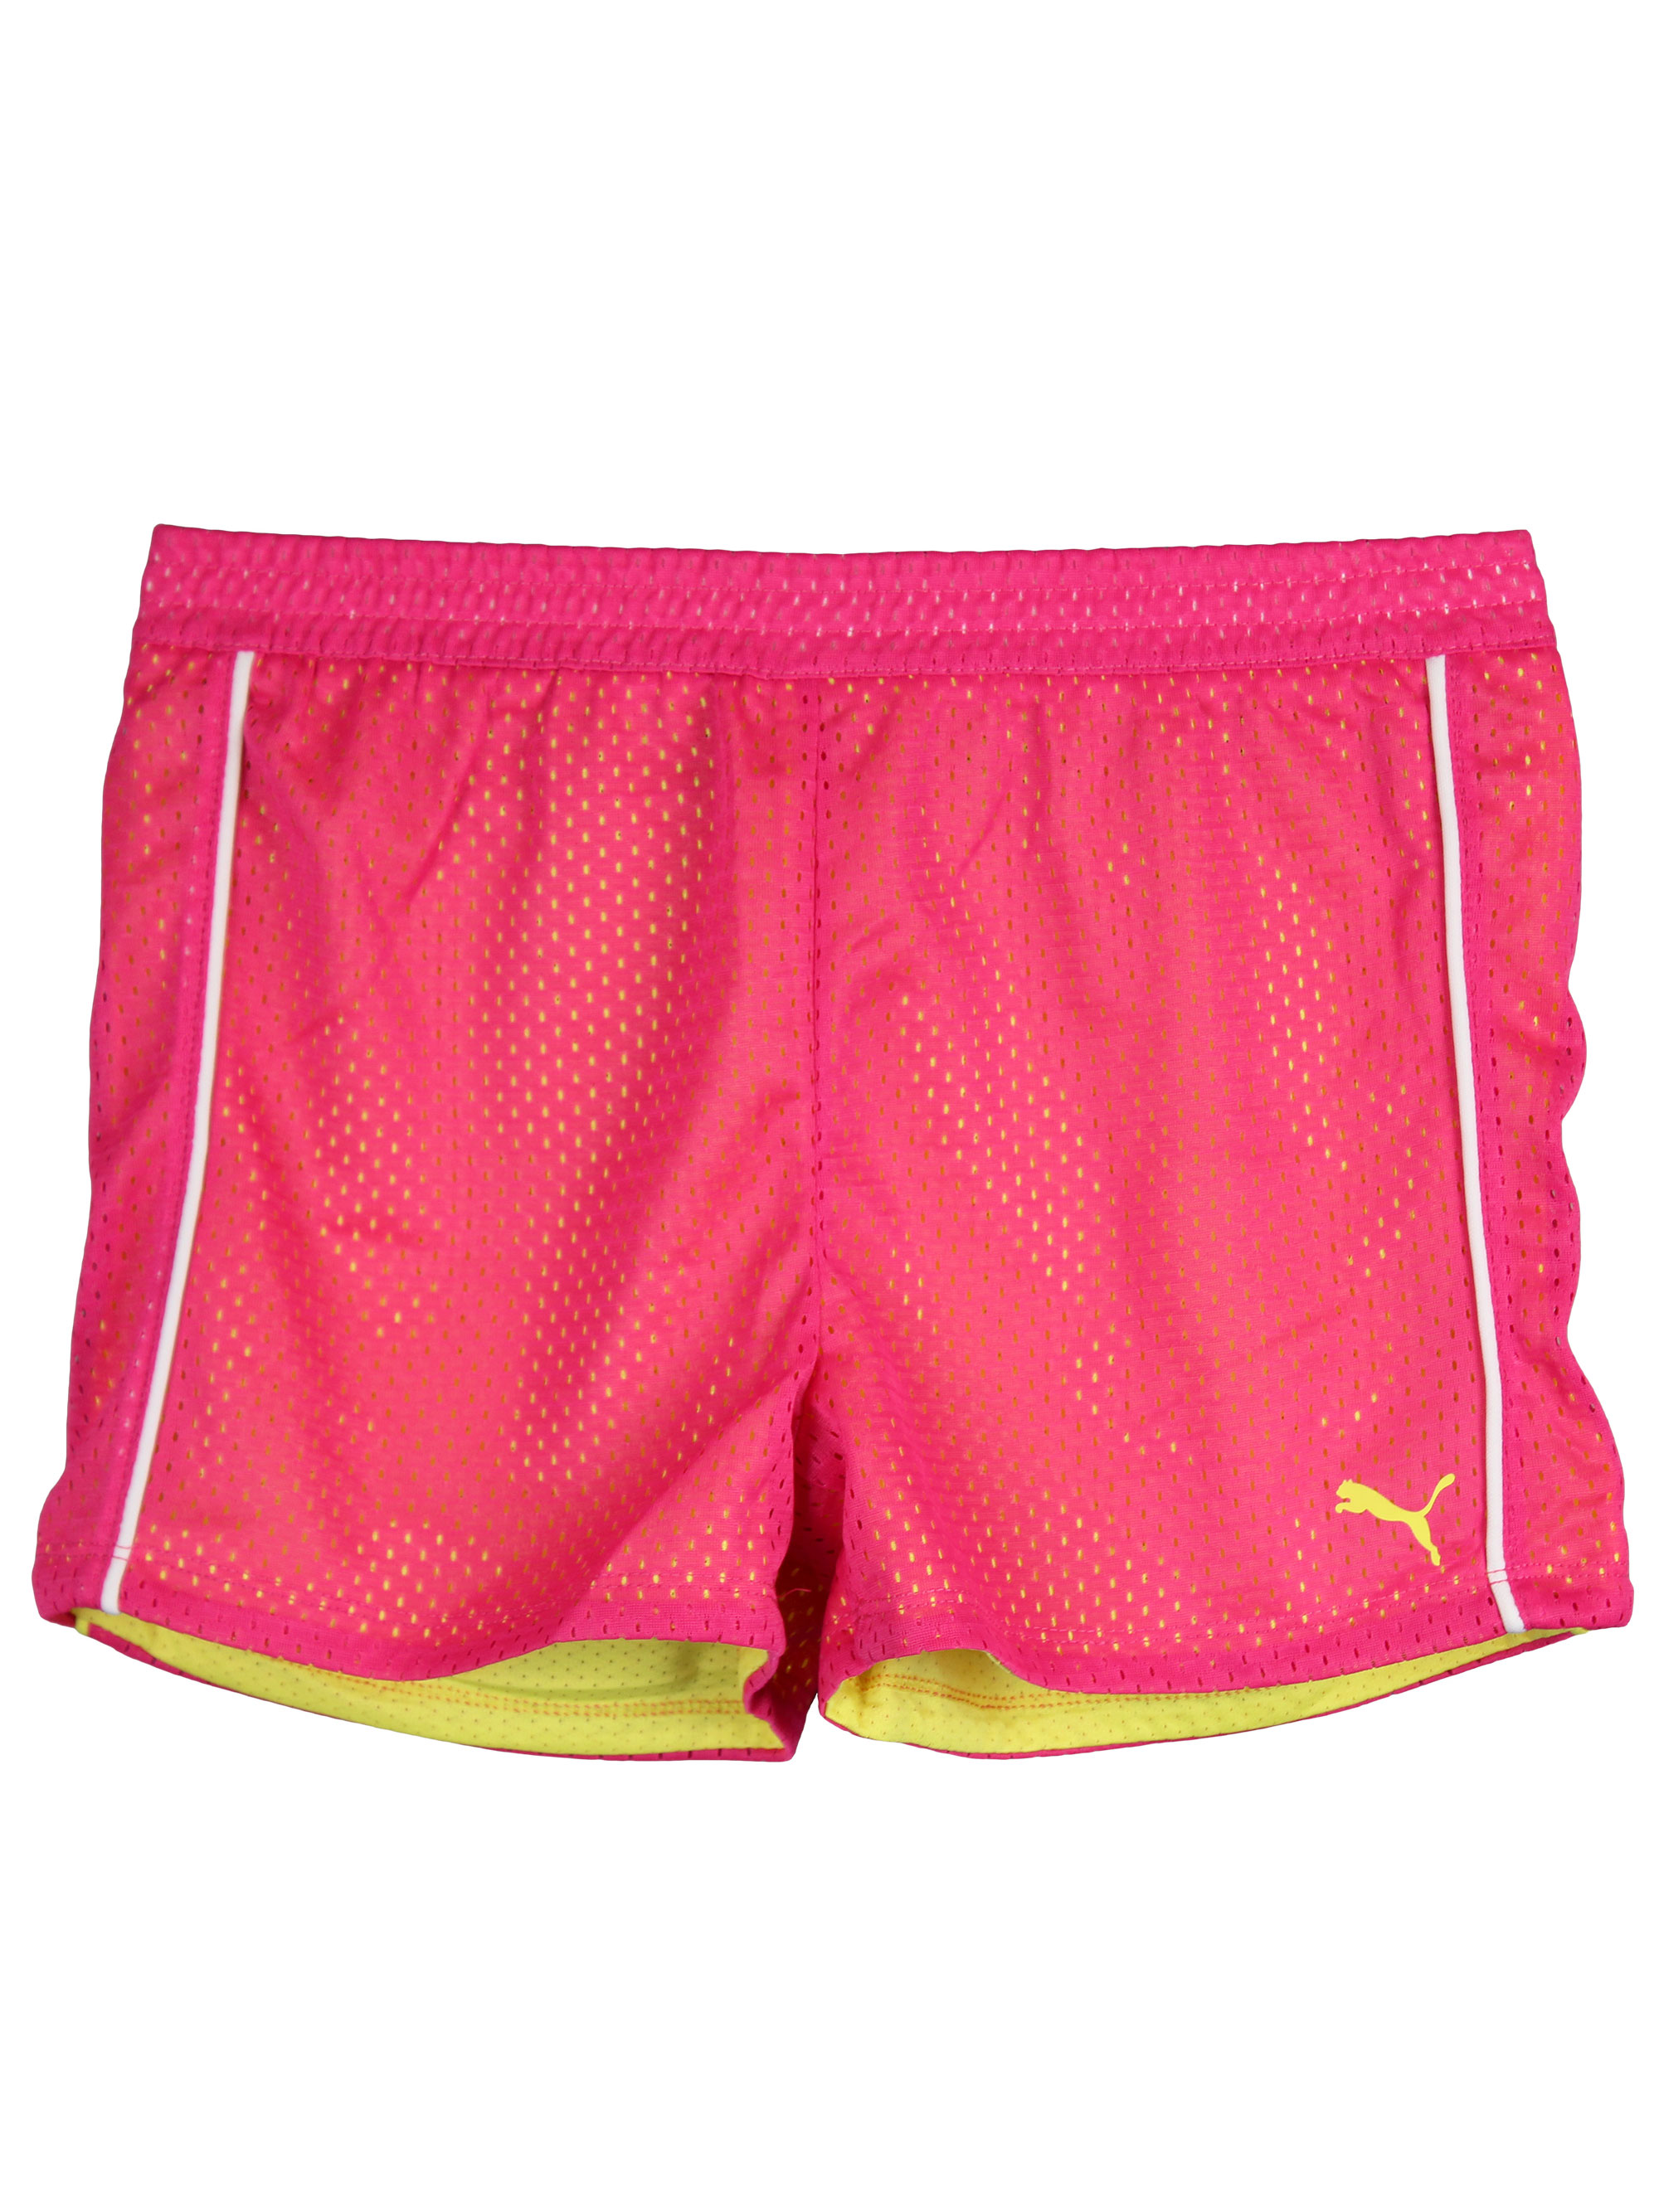 PUMA Little Girls Mesh Athletic Exercise Gym Shorts Pink Yellow White Size 6